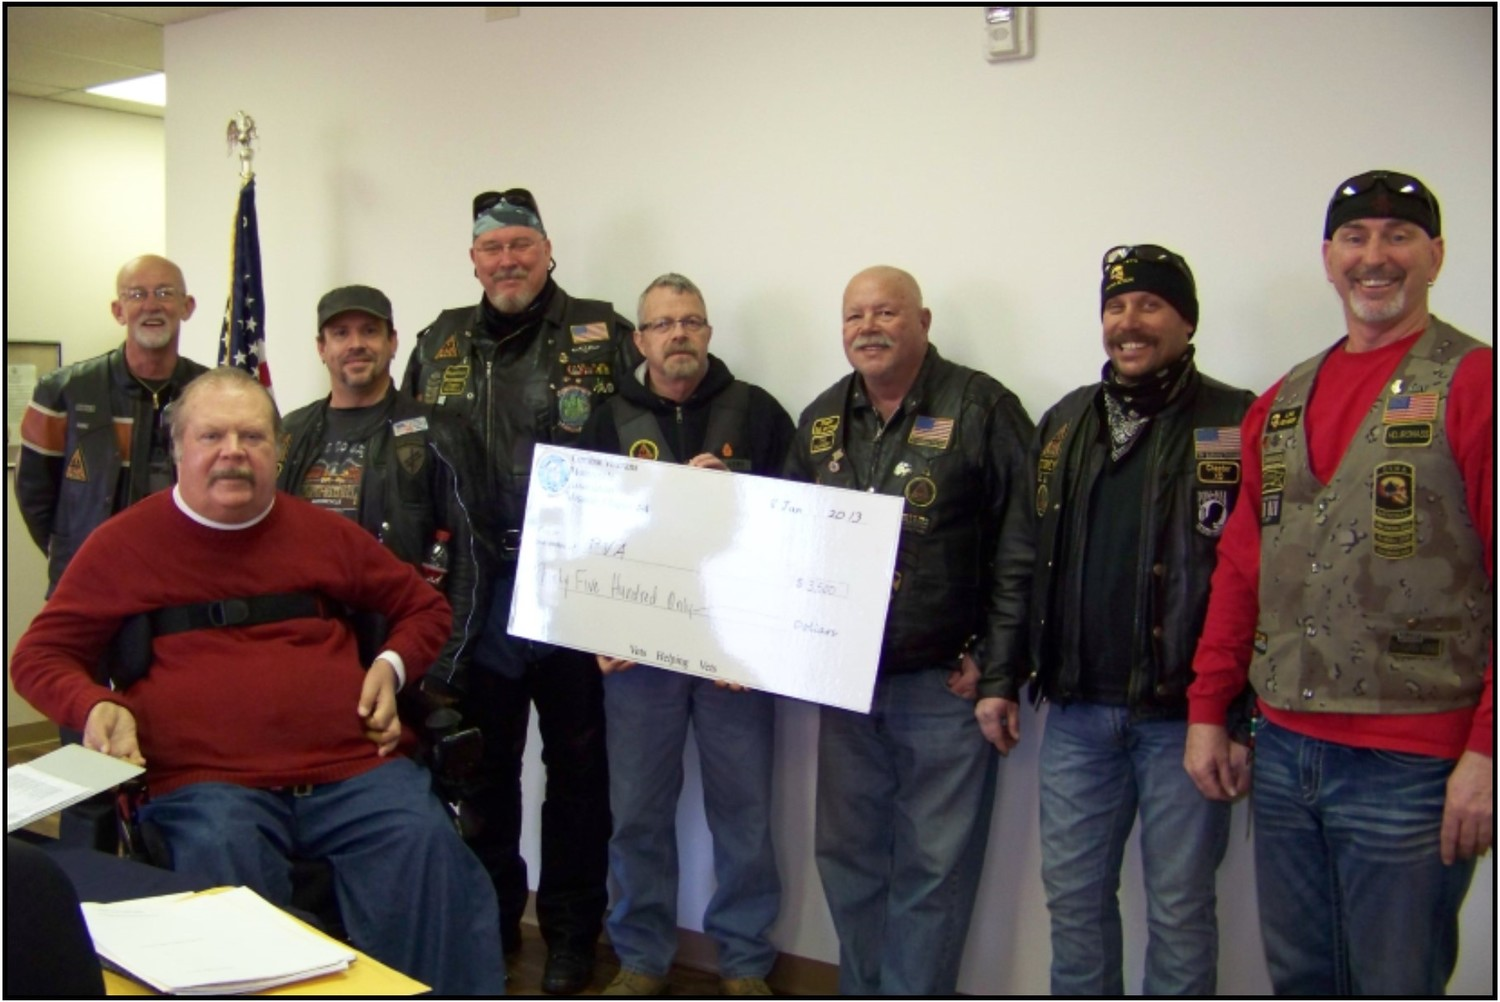 Fundraising — Gateway Chapter of Paralyzed Veterans of America